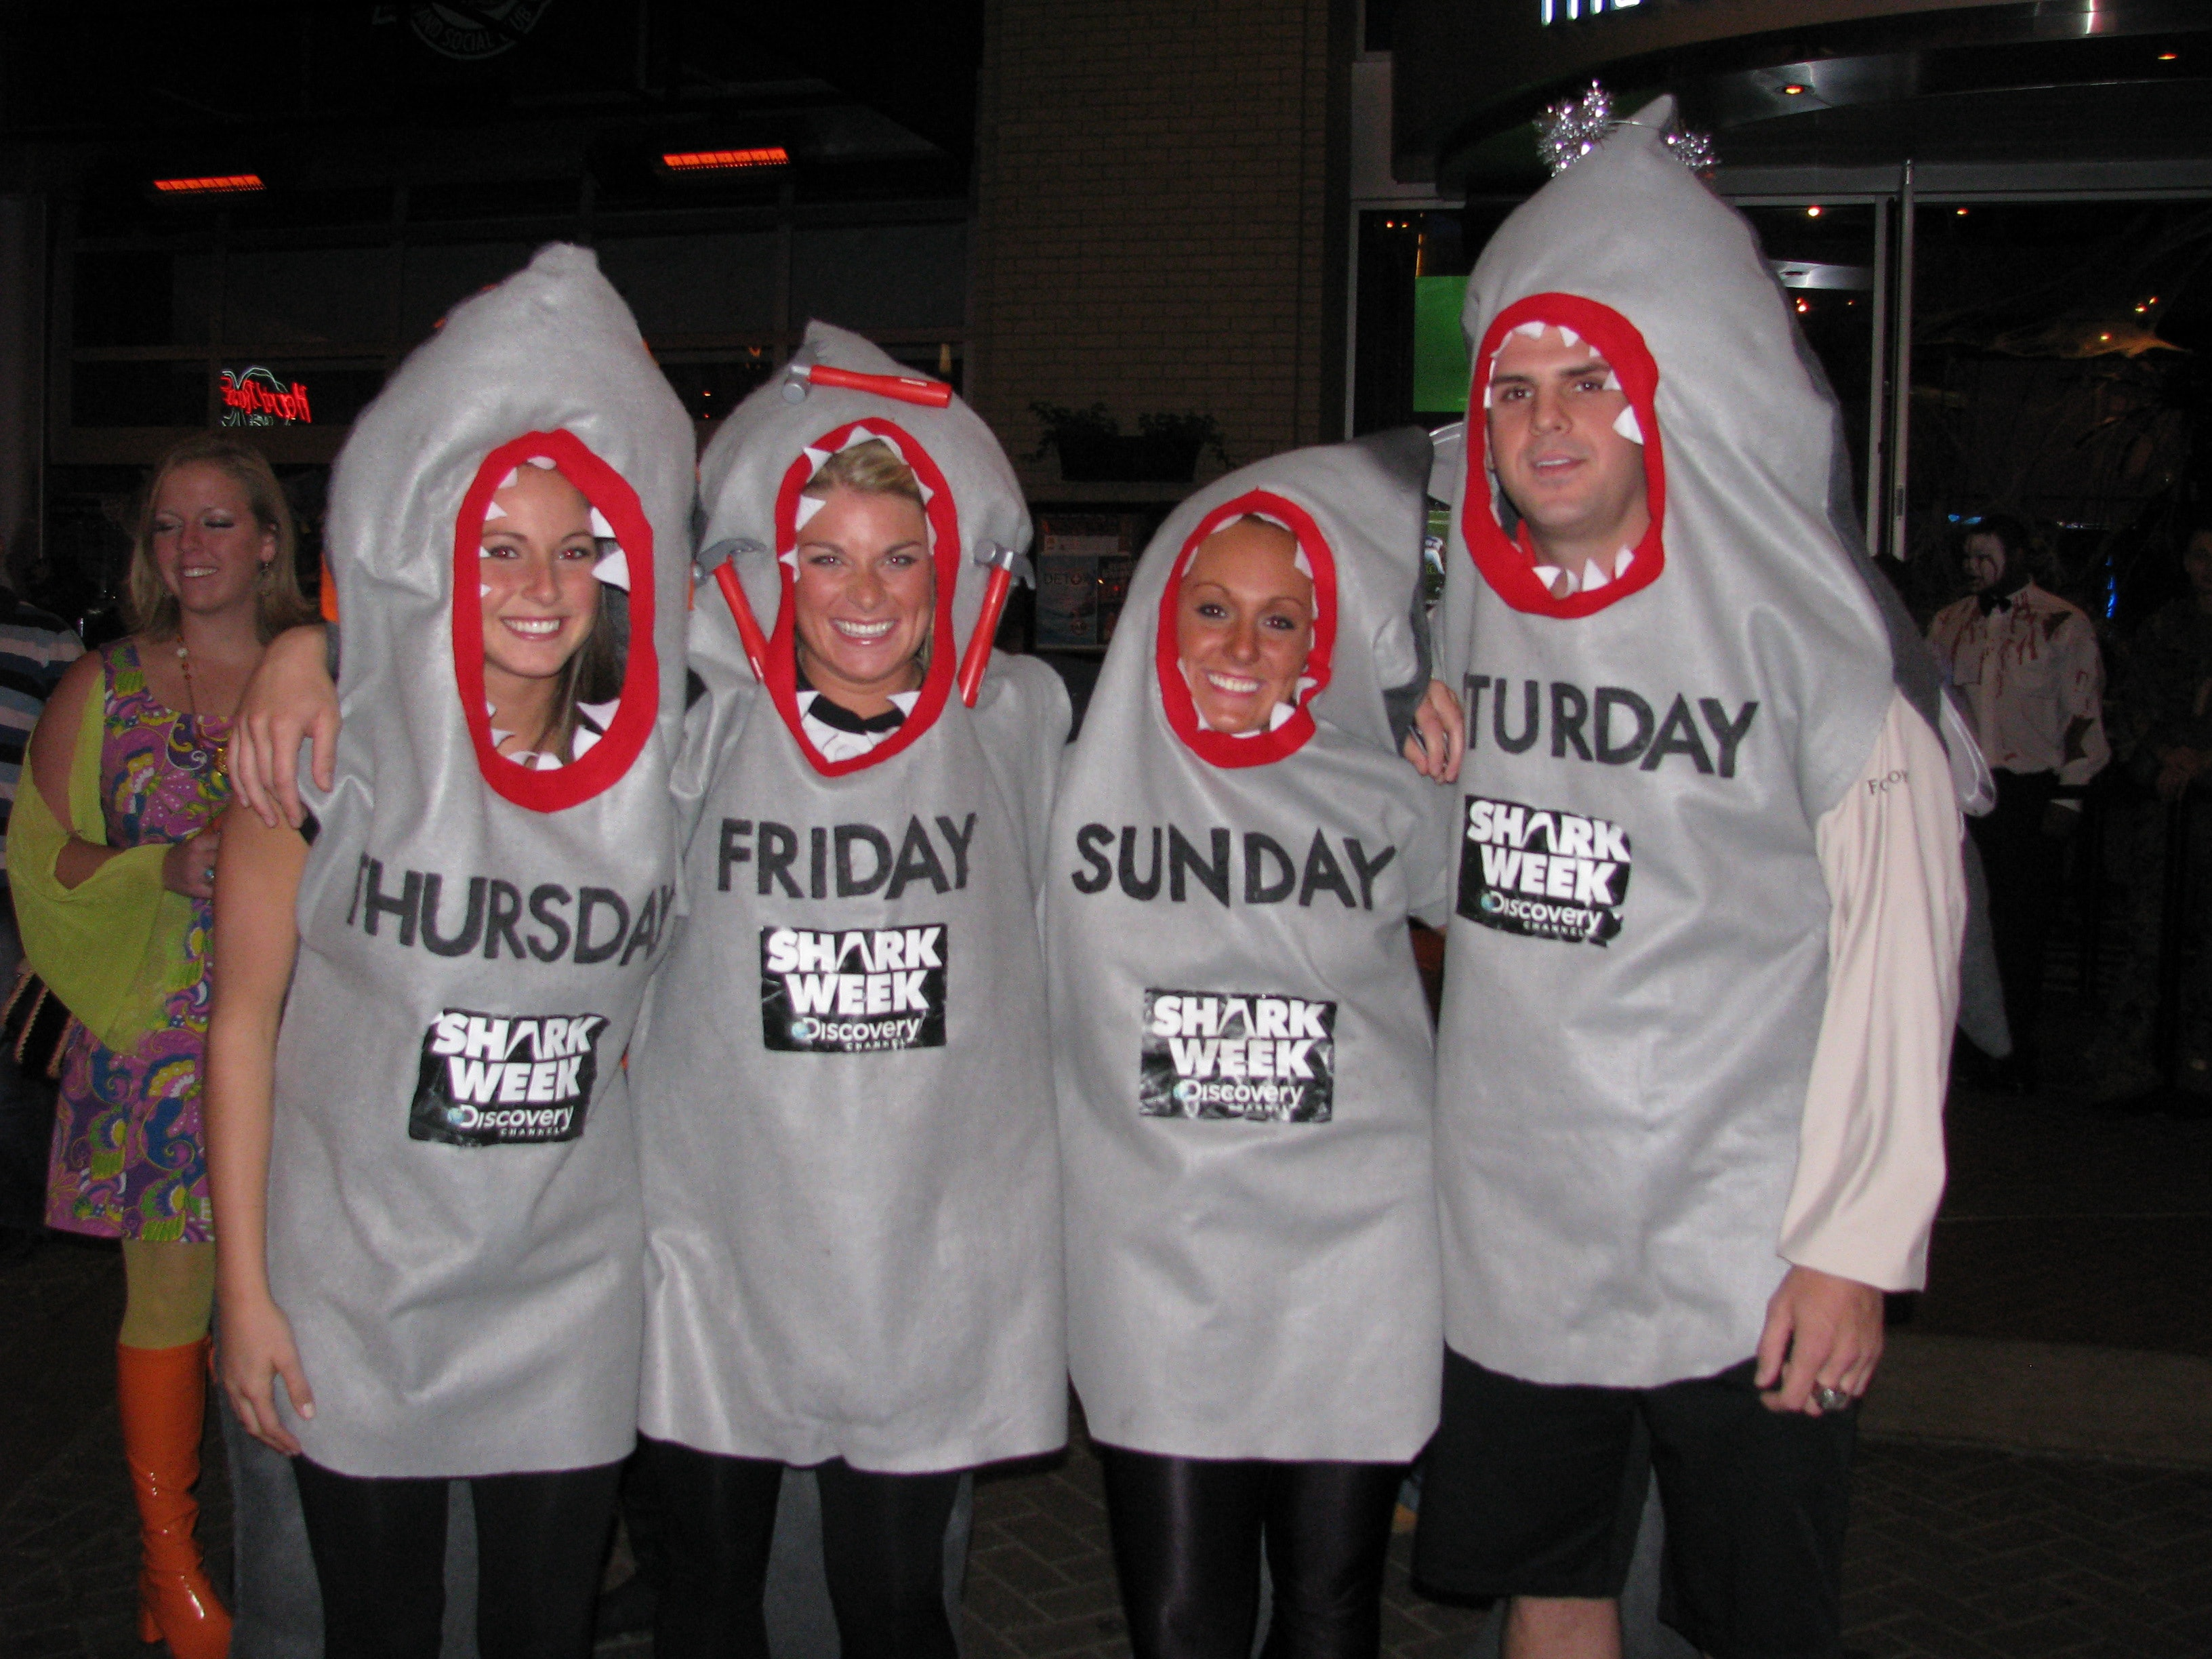 20 Funny Group Halloween Costumes That Will Make Your ...